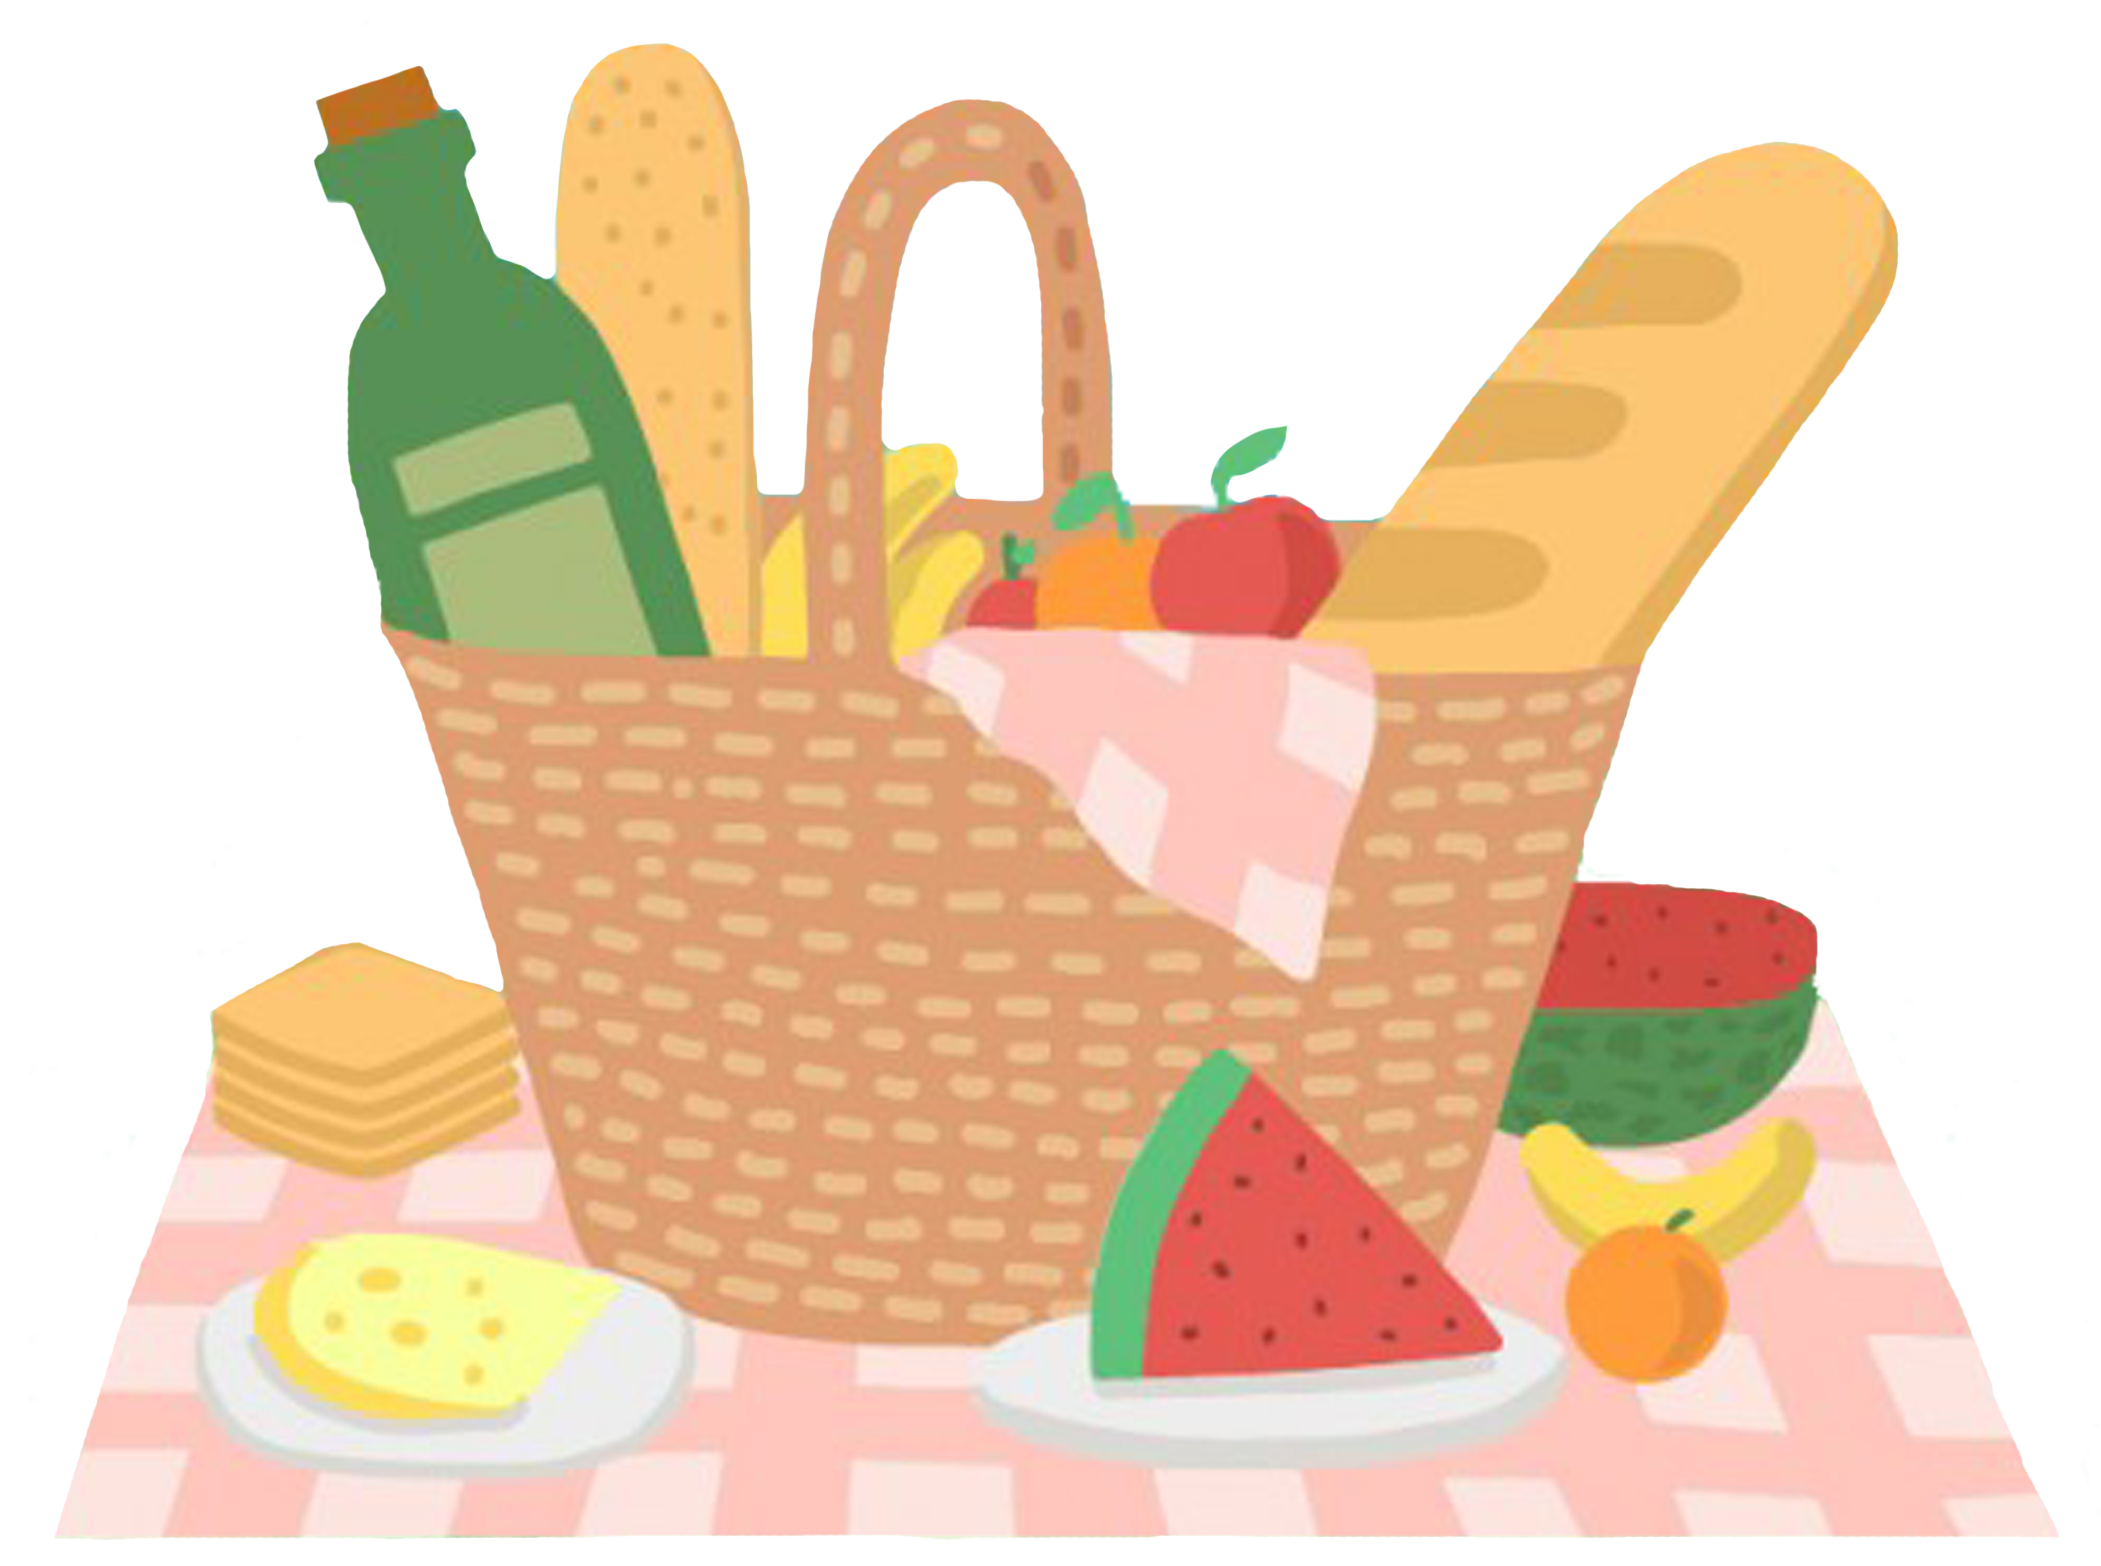 Picnic Basket Clipart family picnic food Family picnic